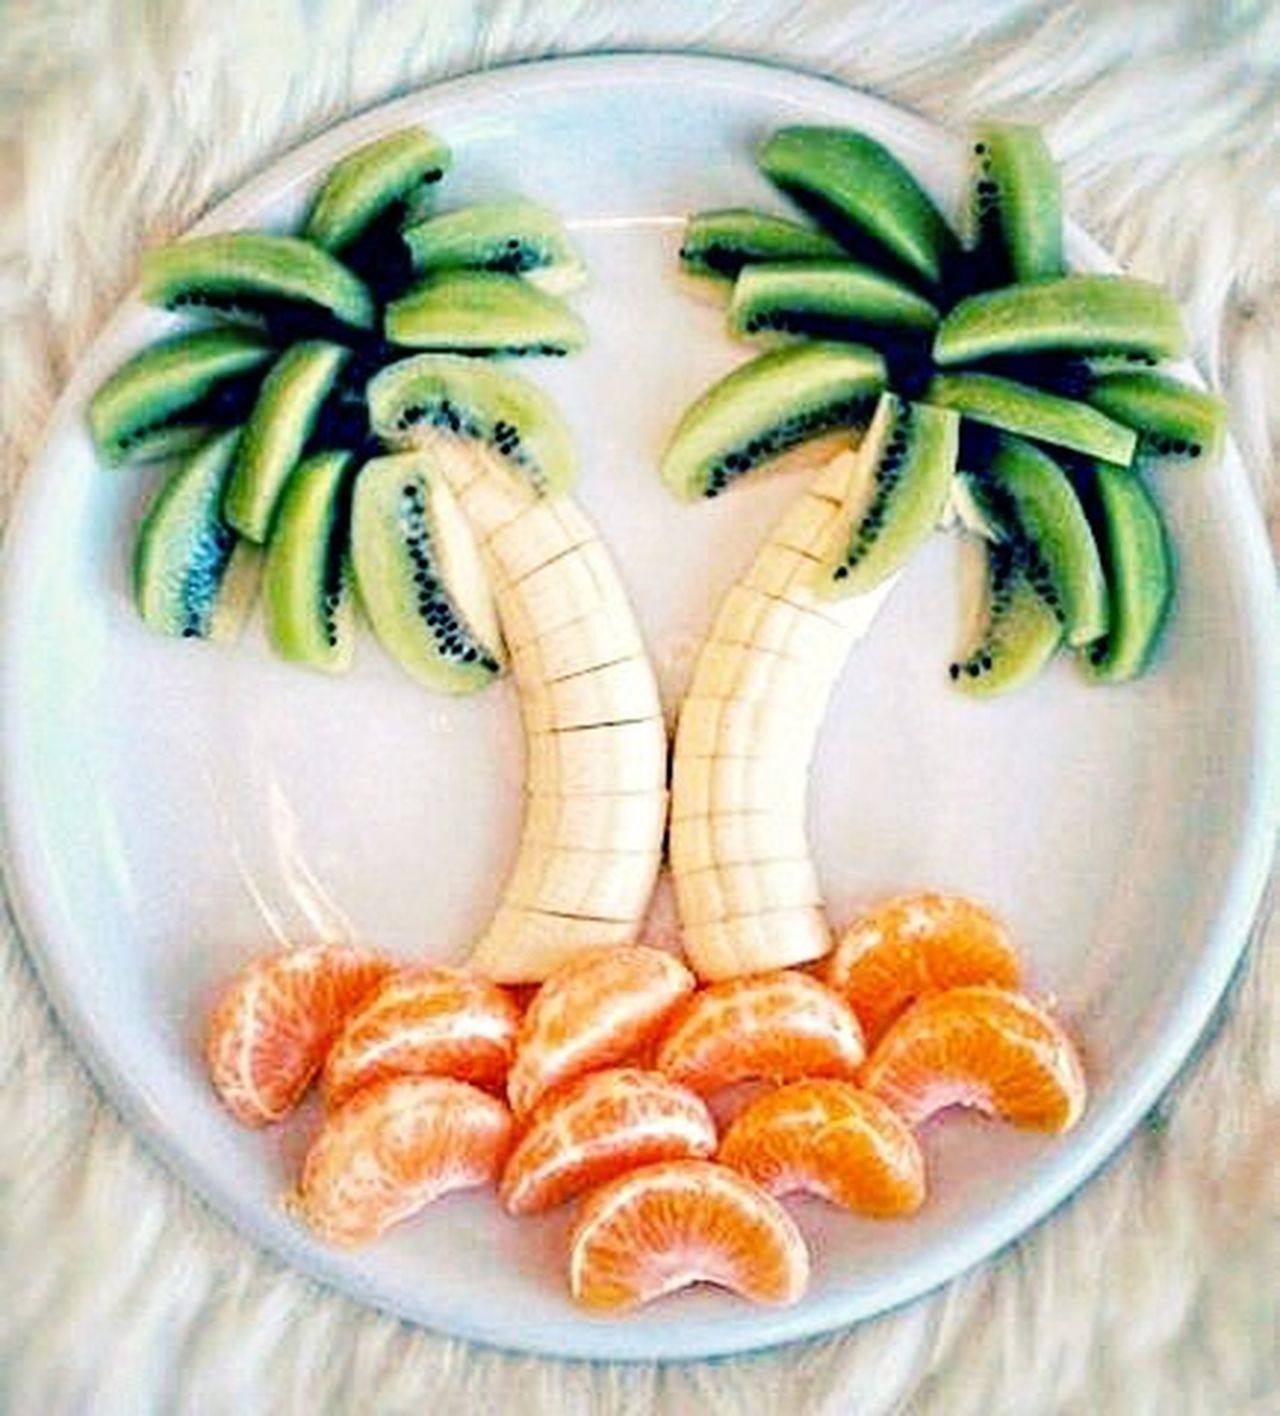 Pornfood Fruitporn Fruit Kiwi Banana Bananas Mandarin Mandarini Plate Composite Everything In Its Place